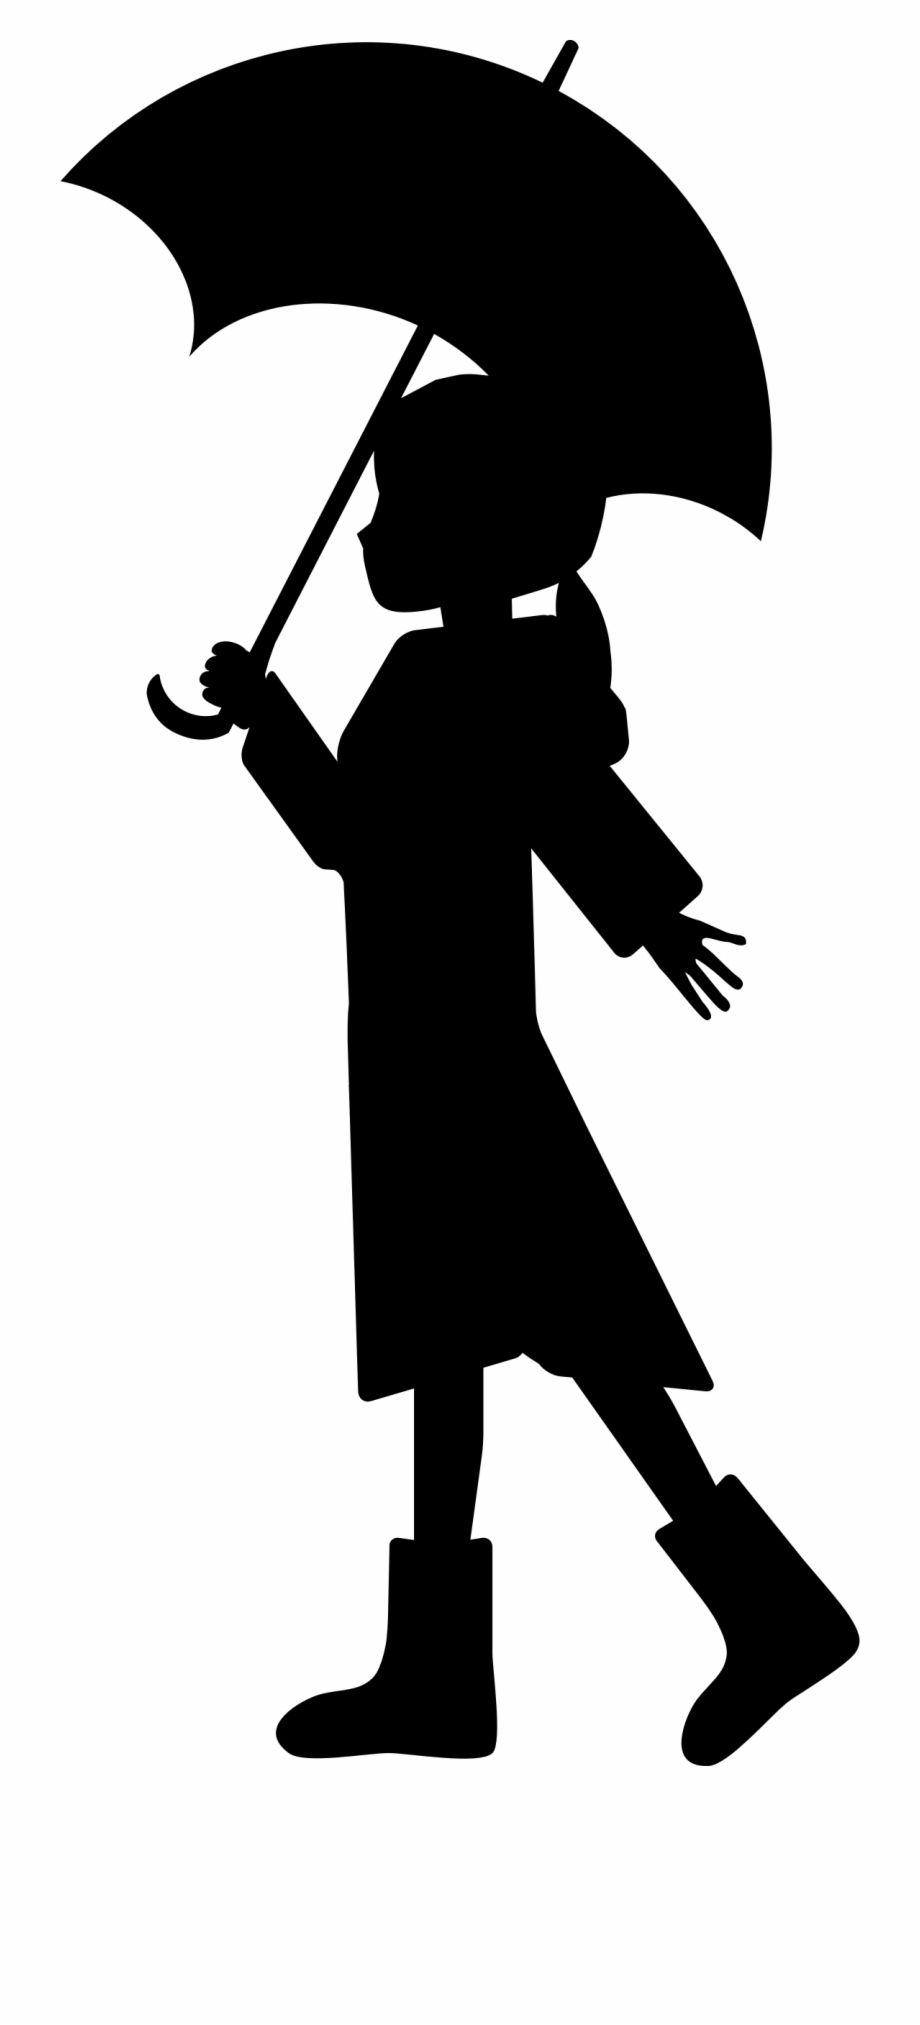 Holdingumbrella clipart clip royalty free Umbrella Girl Silhouette At Getdrawings - Silhouette Of Girl ... clip royalty free